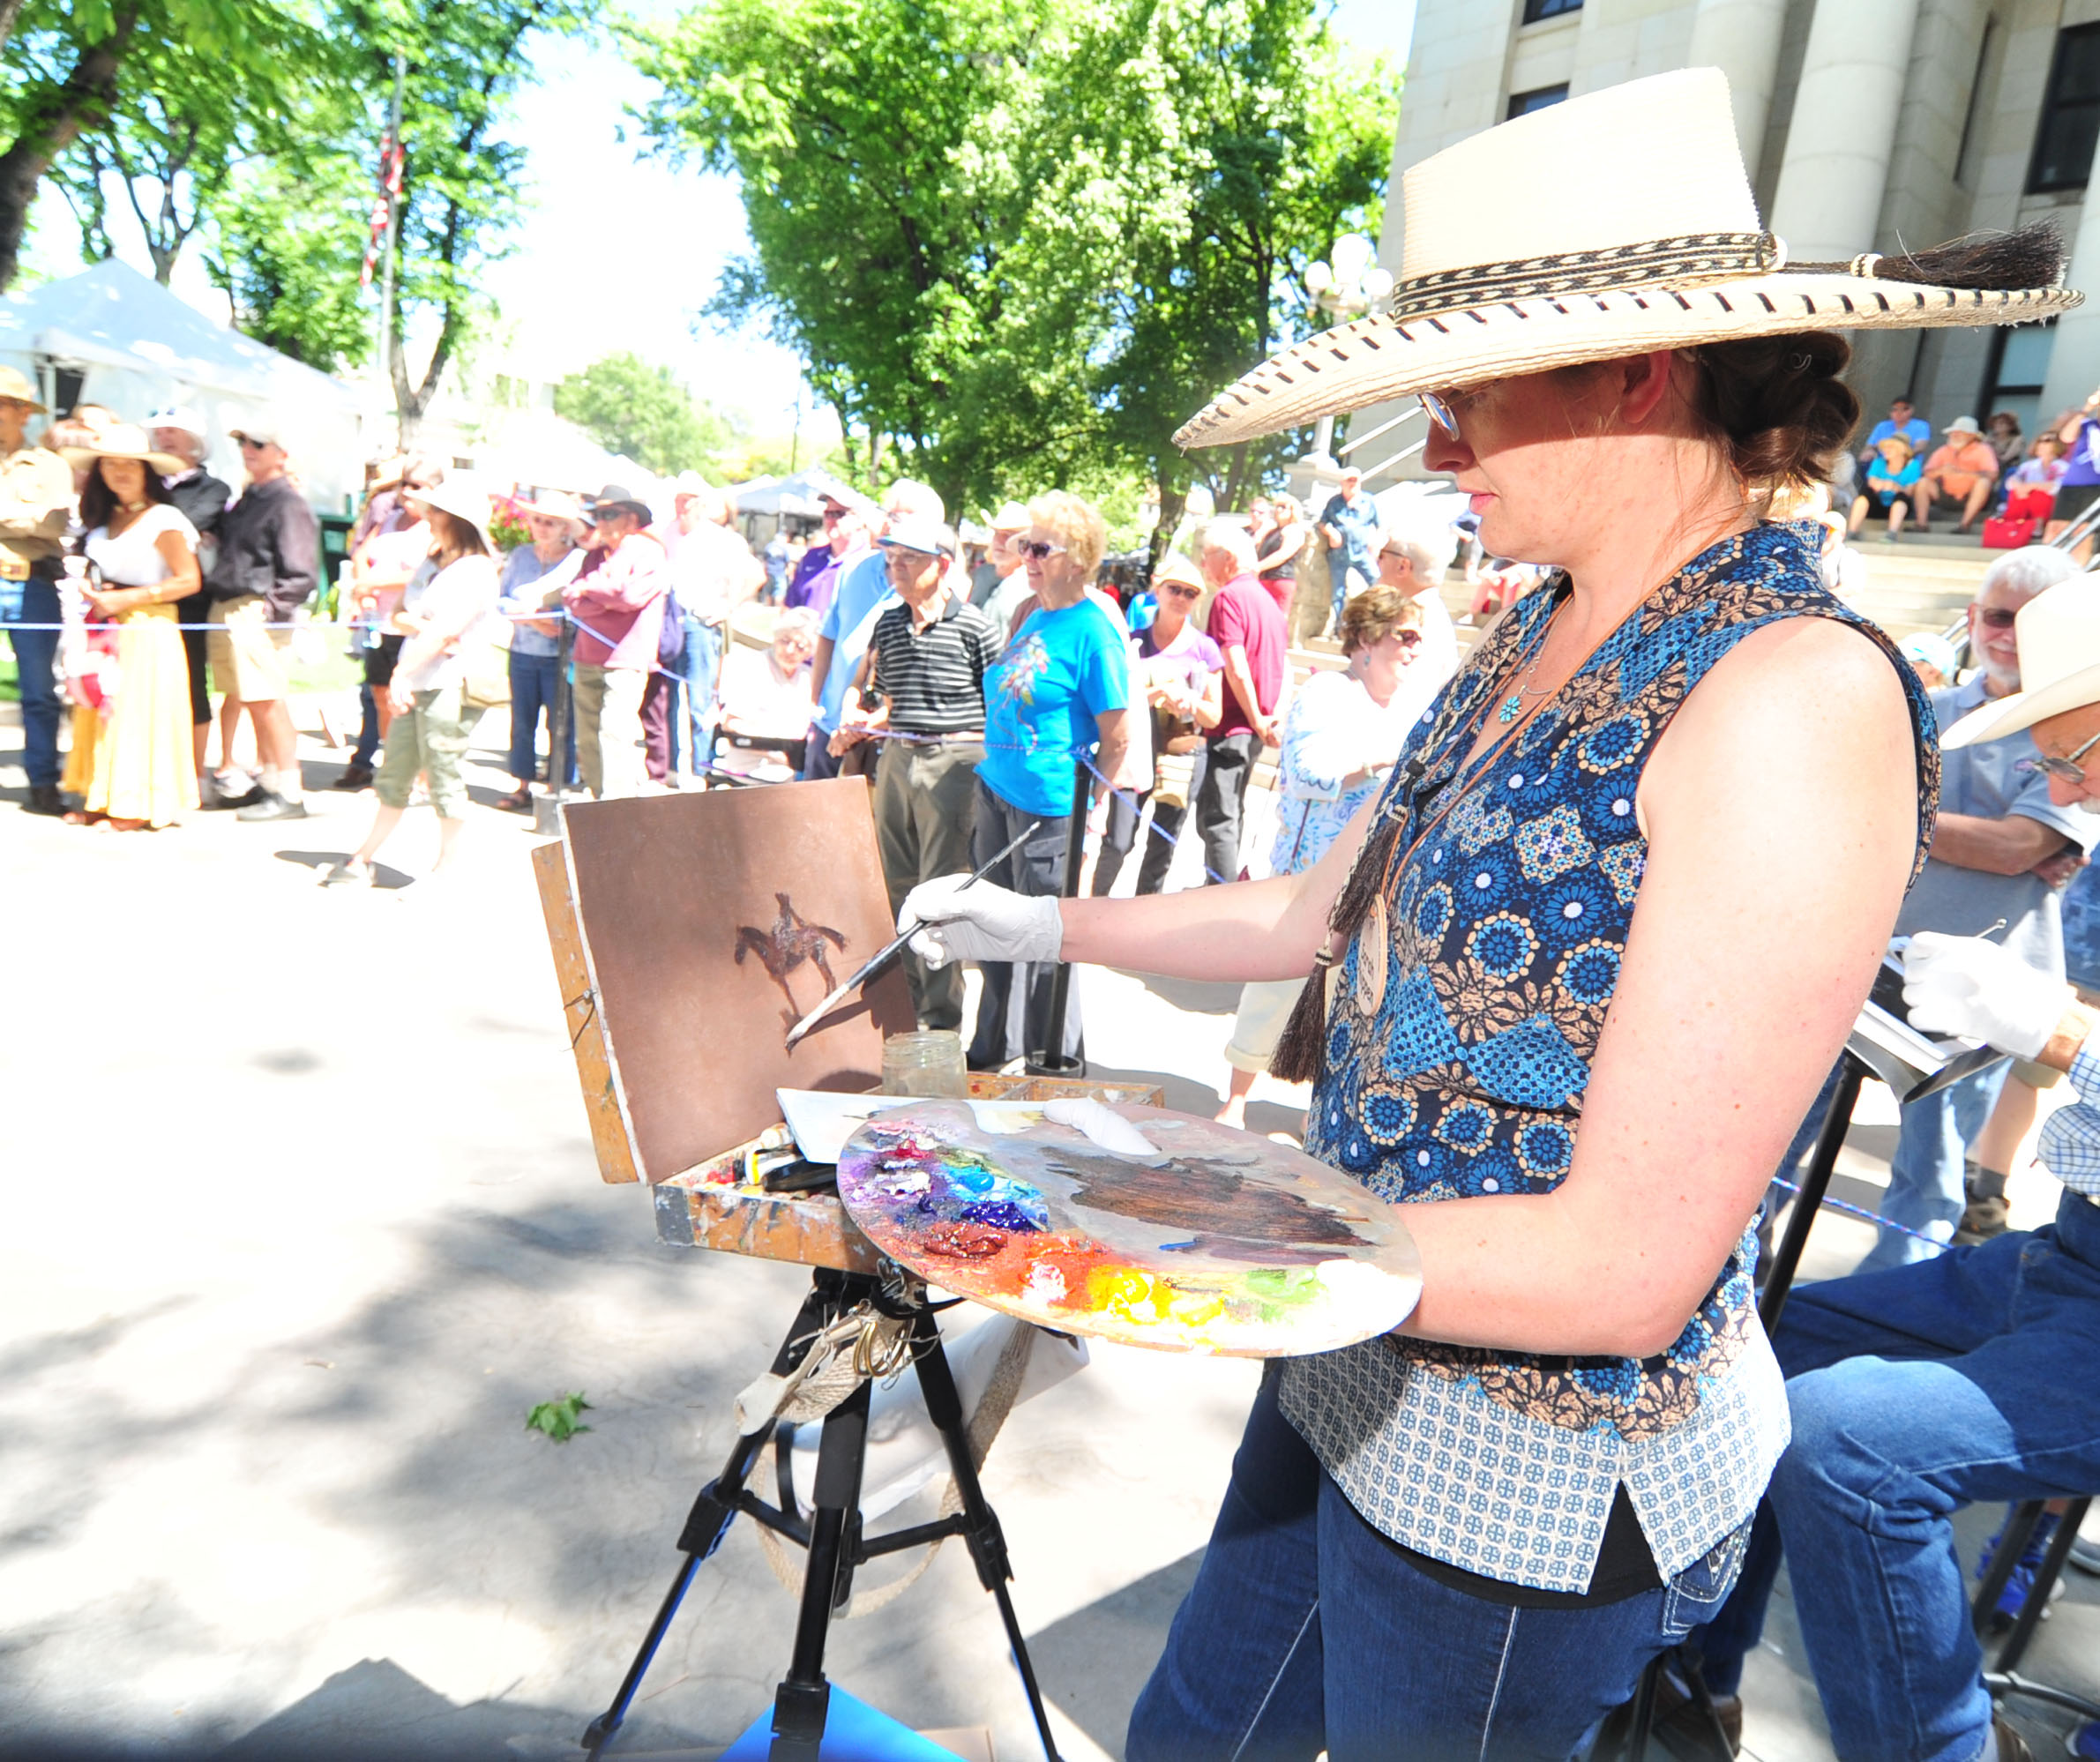 Phippen puts on annual Western Art Show & Sale this weekend